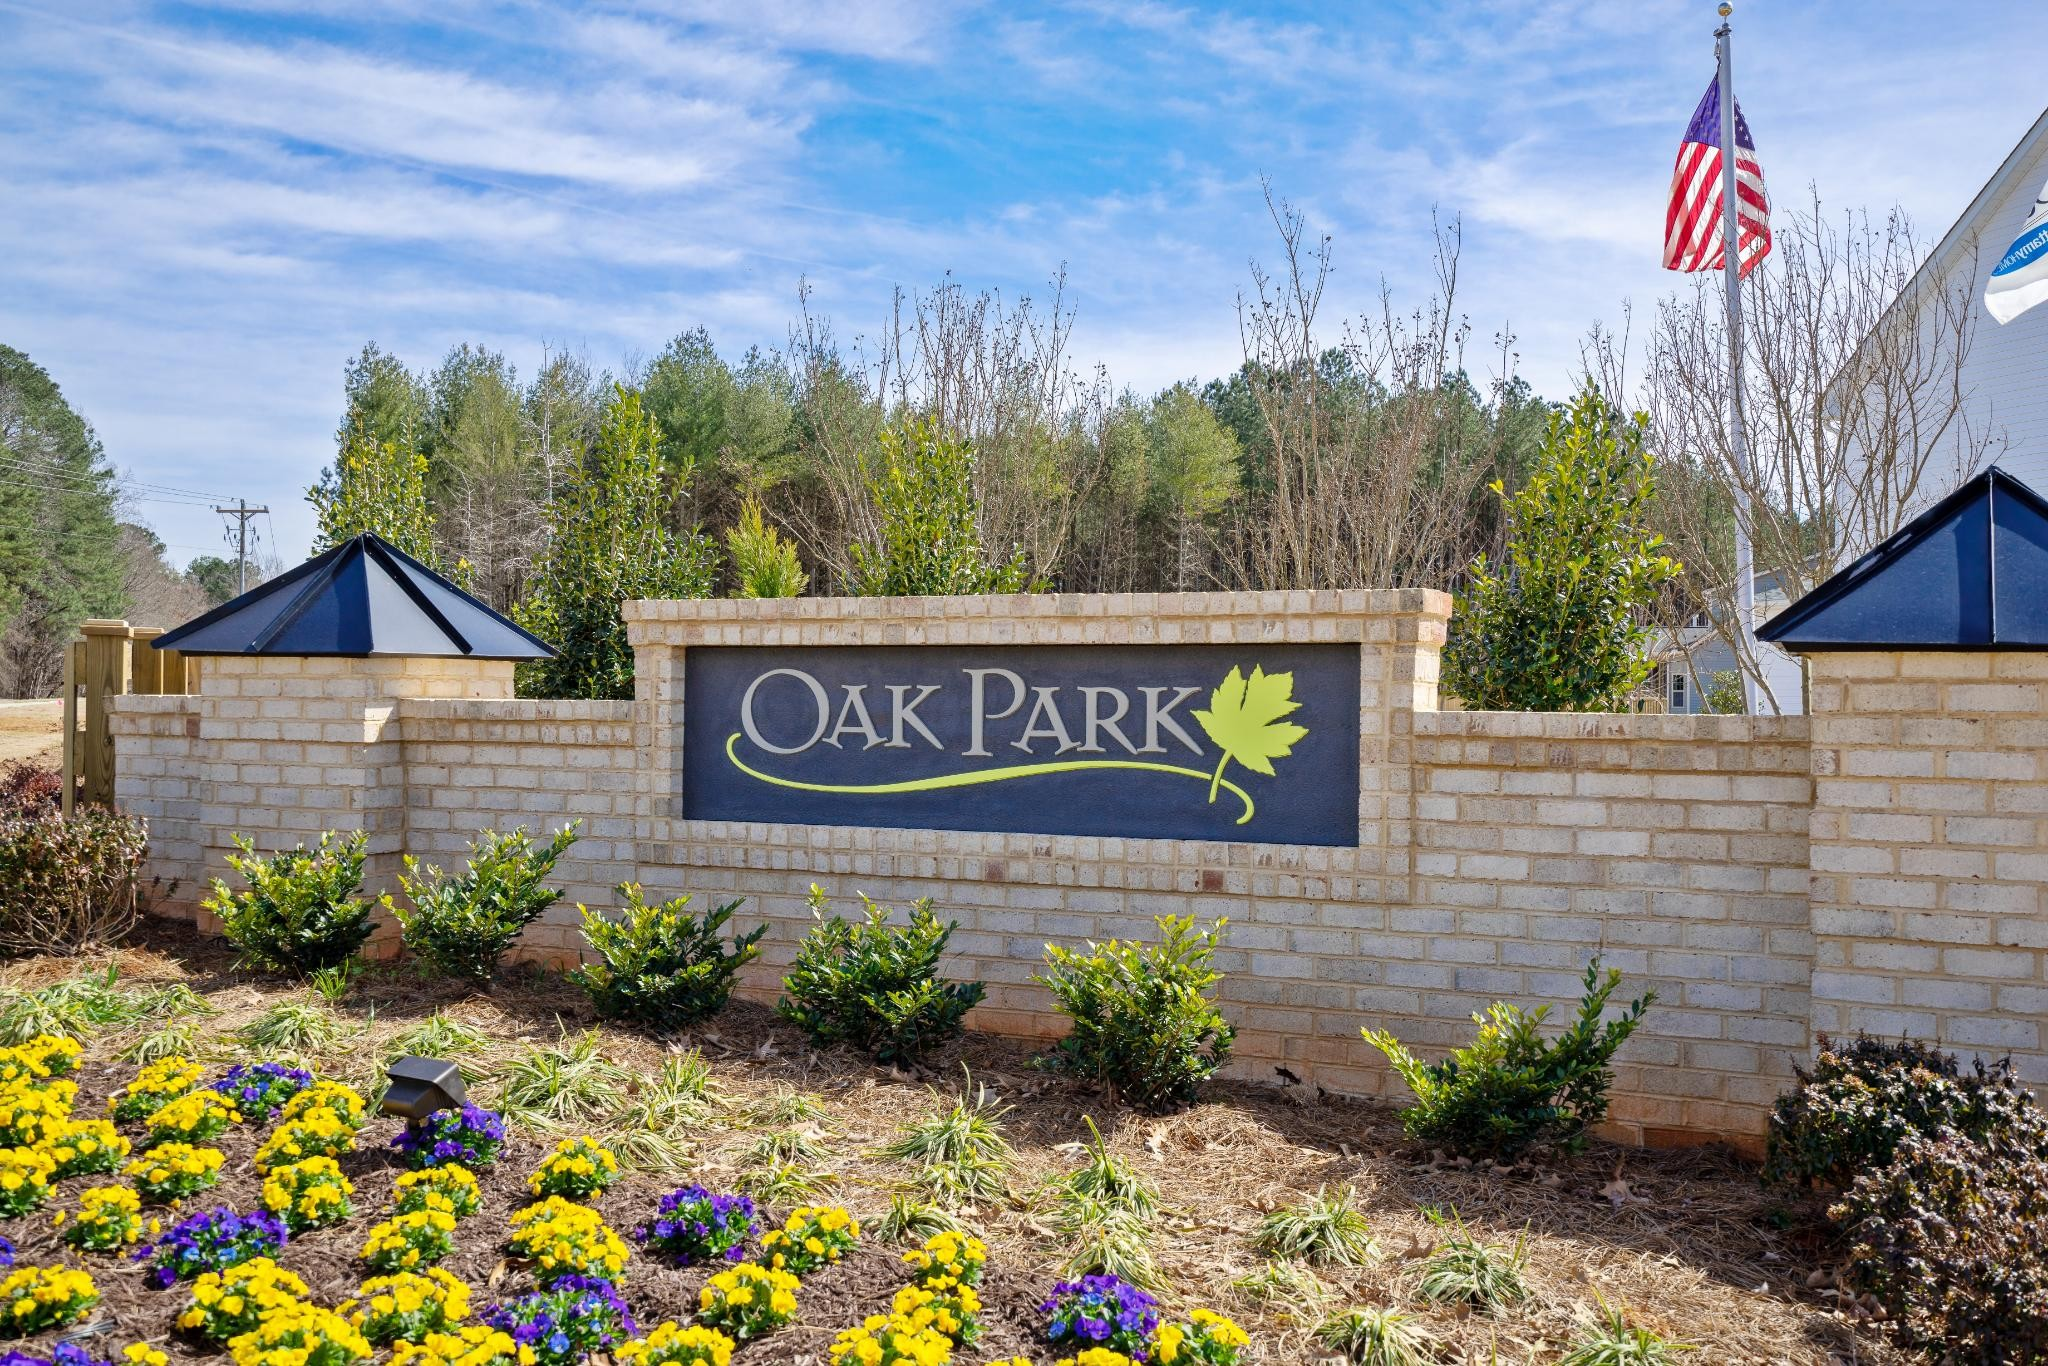 Royal Oaks a Division of Mattamy Homes, Oak Park, Entrance Monument